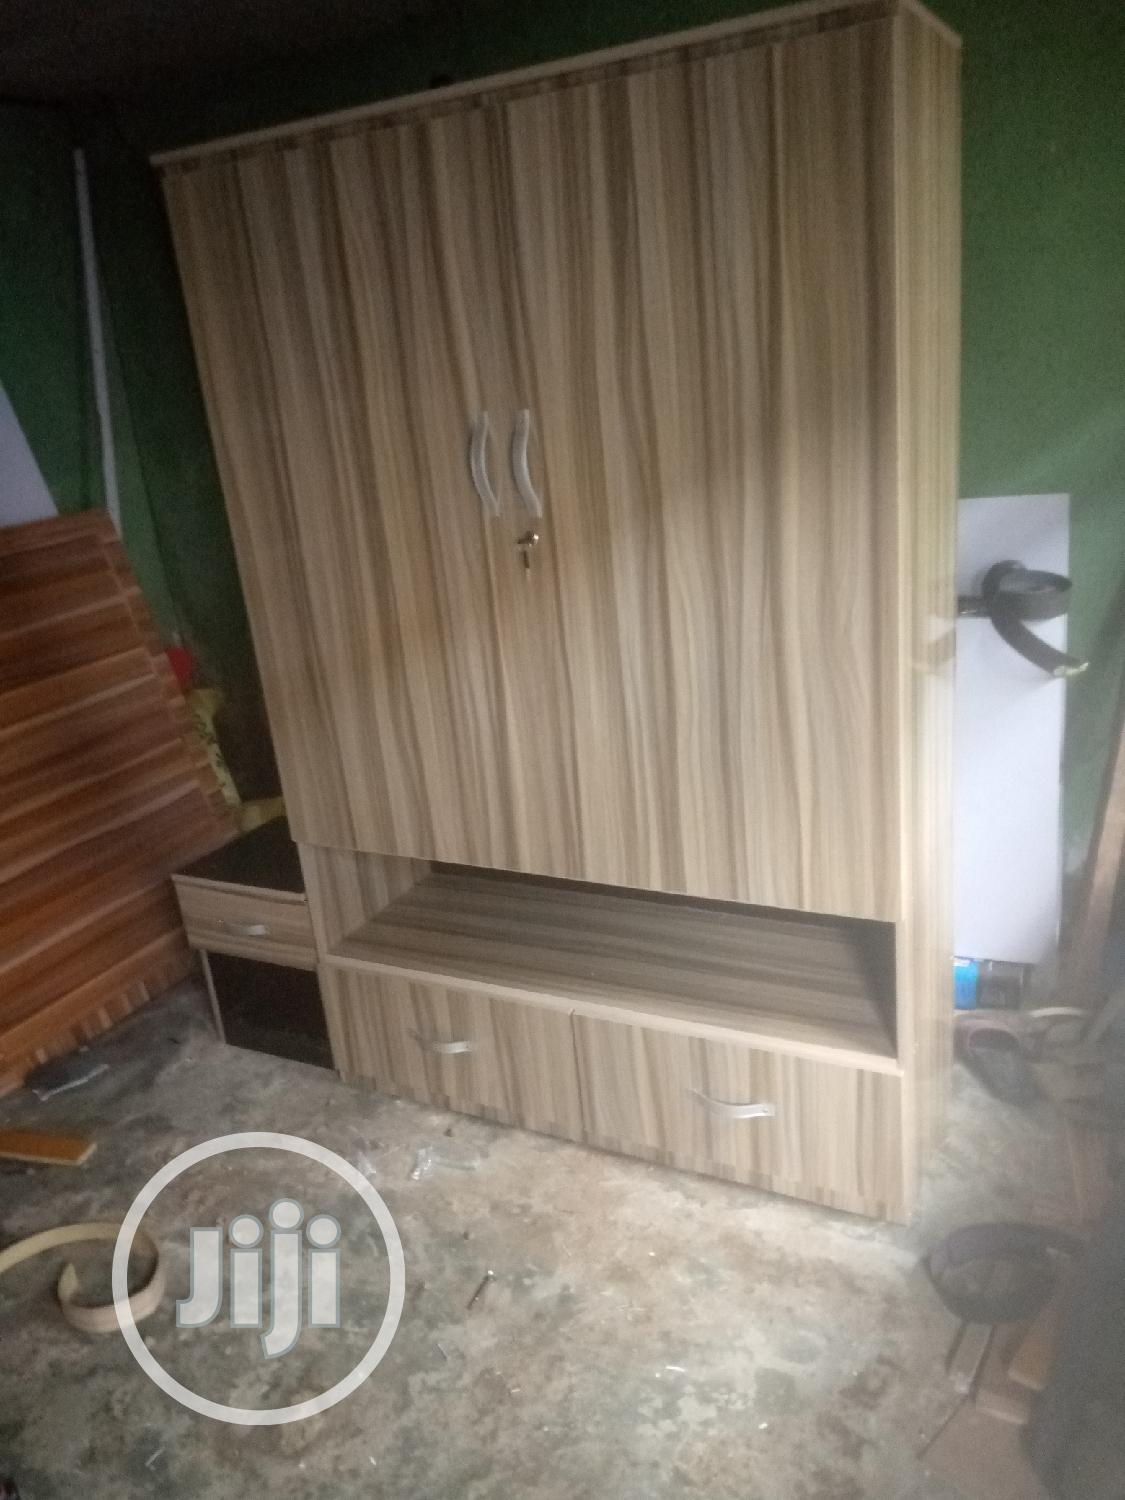 Standard Mbf Titles Wardrobe | Furniture for sale in Udu, Delta State, Nigeria